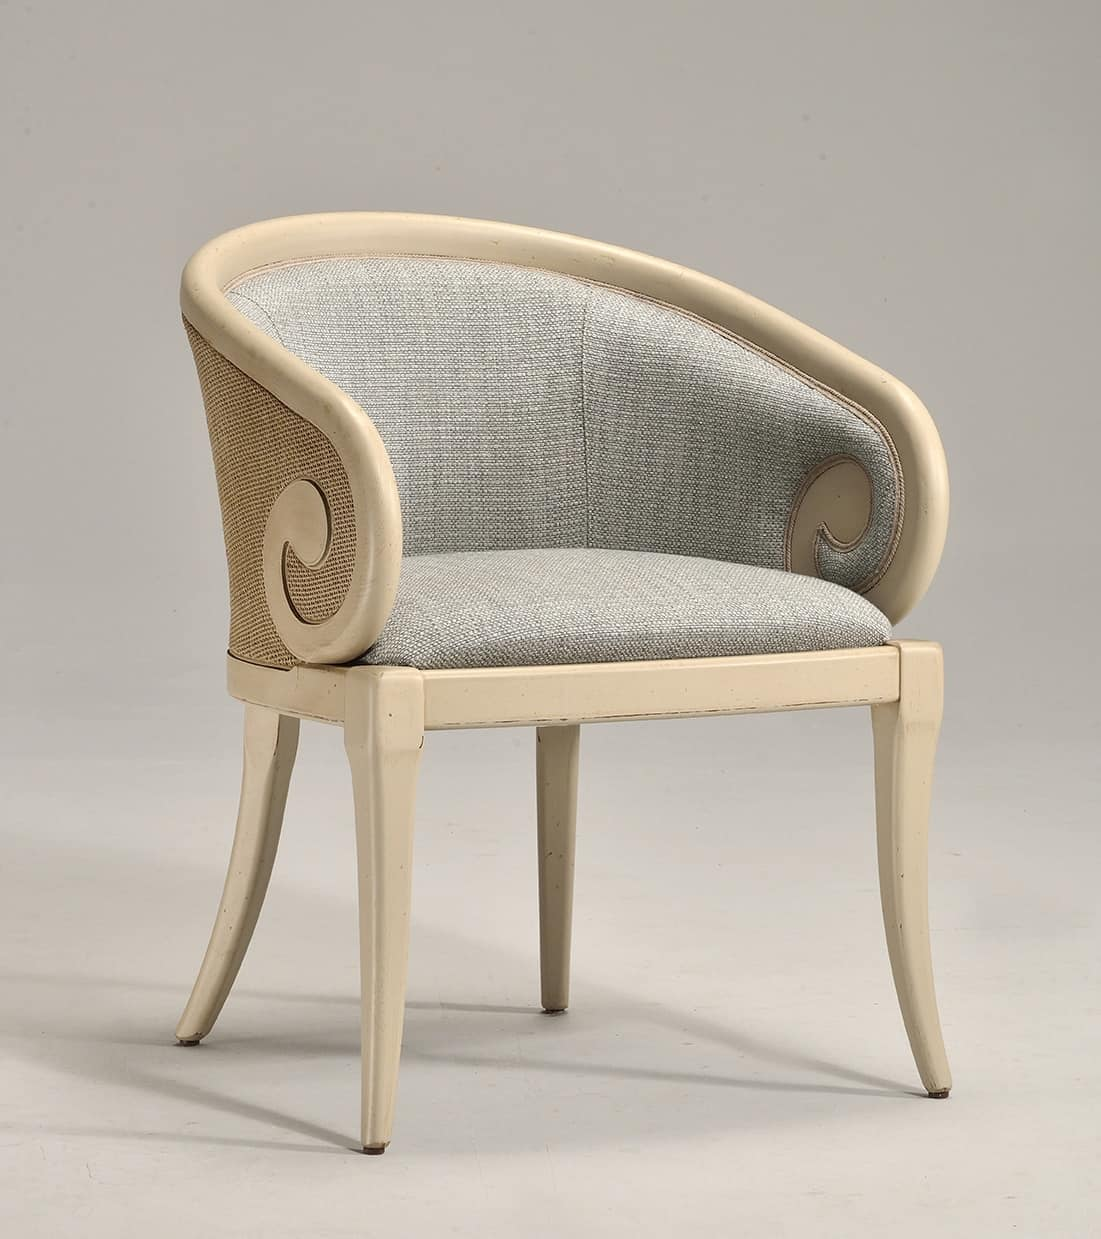 TOFEE armchair (with cane) 8216A, Classic style armchair, covered in fabric